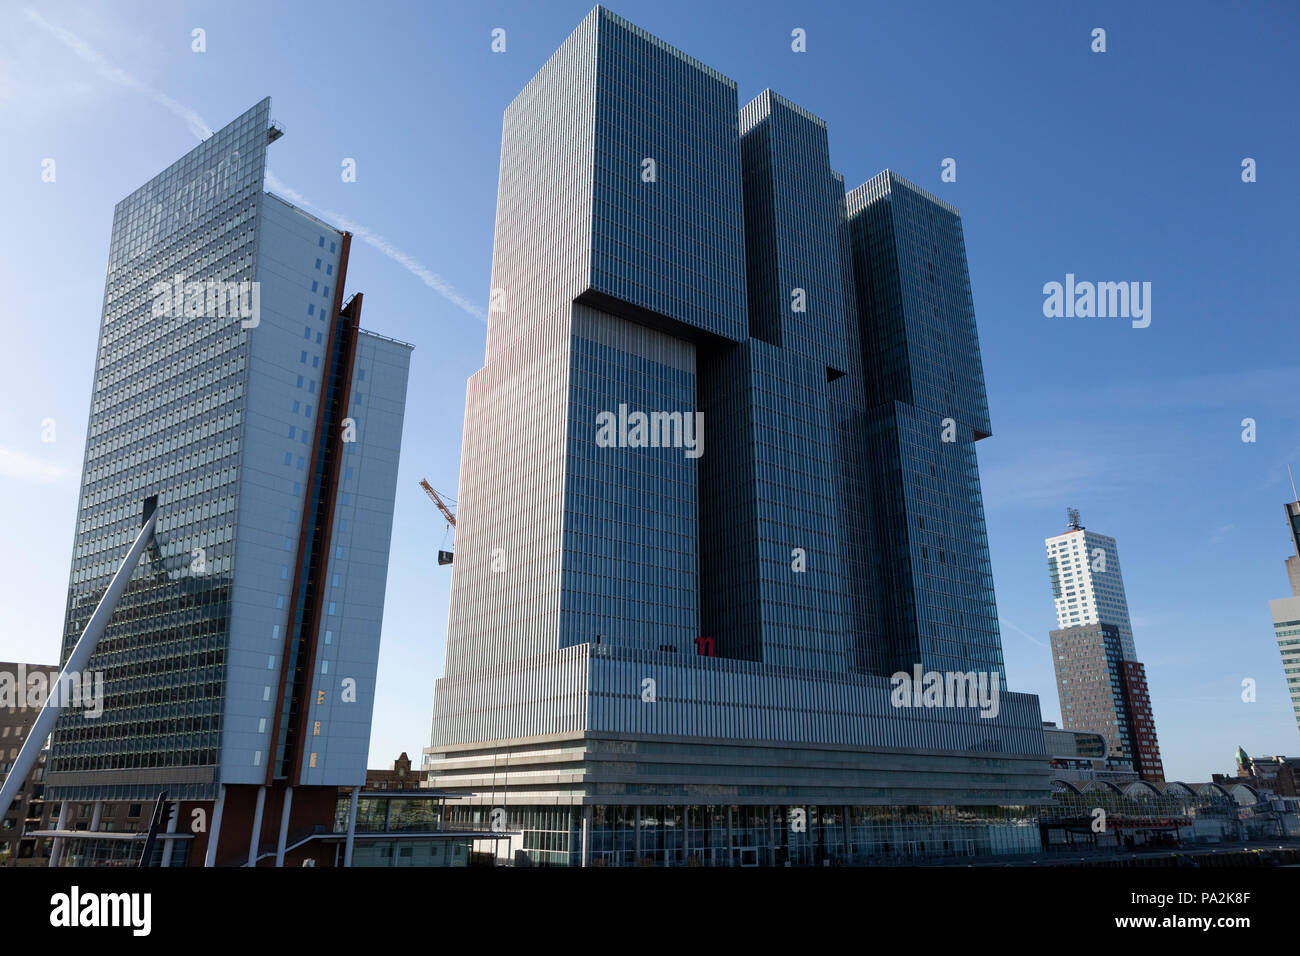 Facade of the de rotterdam building in rotterdam the netherlands